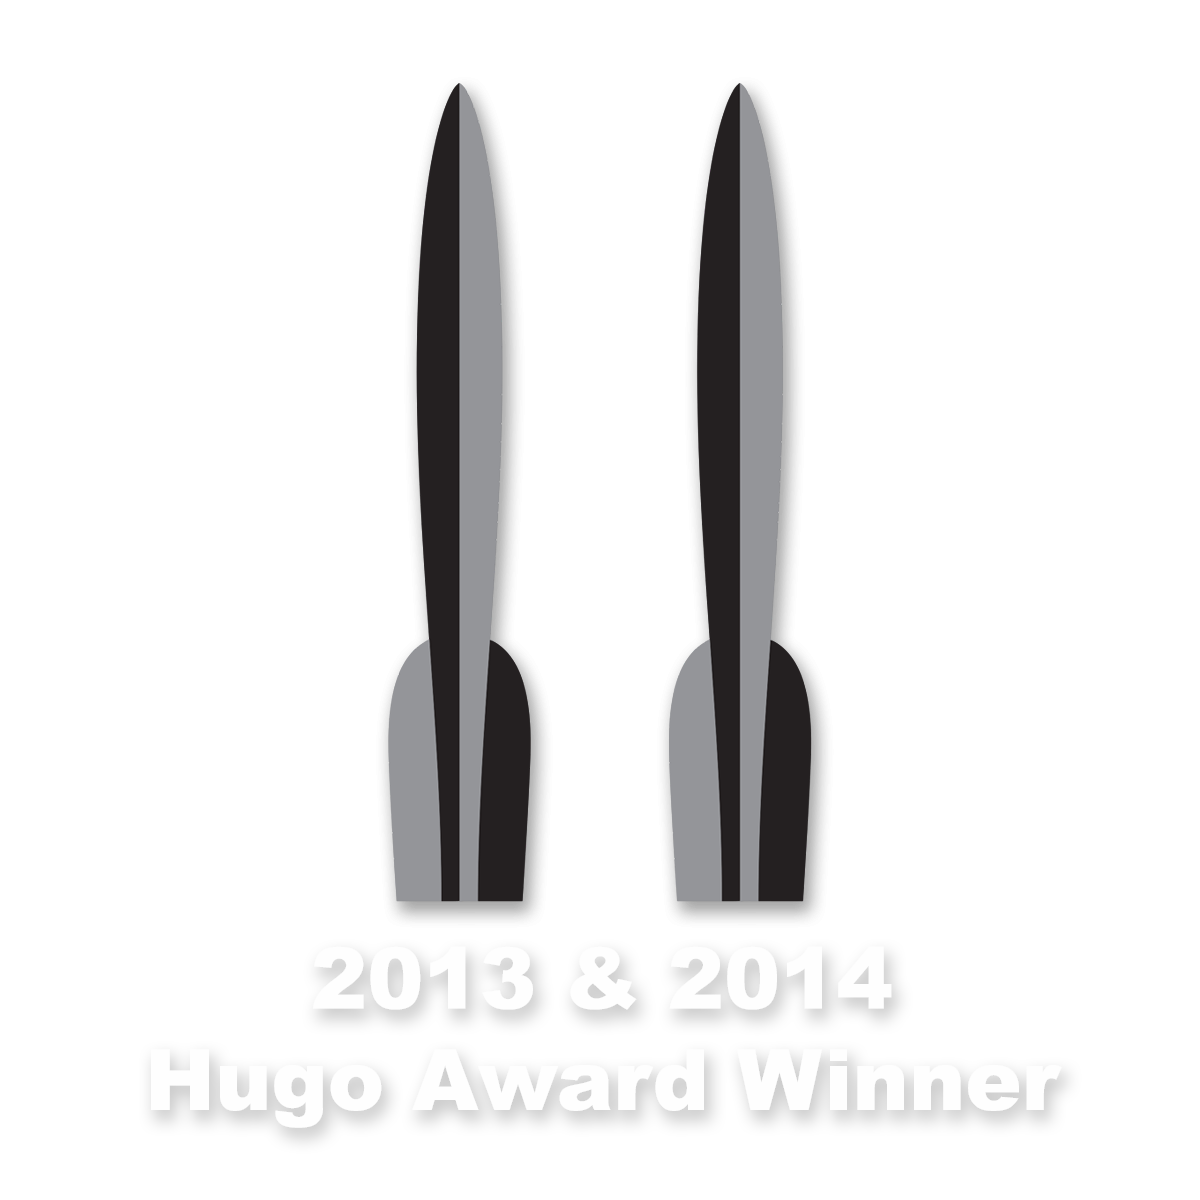 Patrick Hester is a Two-Tine Hugo Award Winner